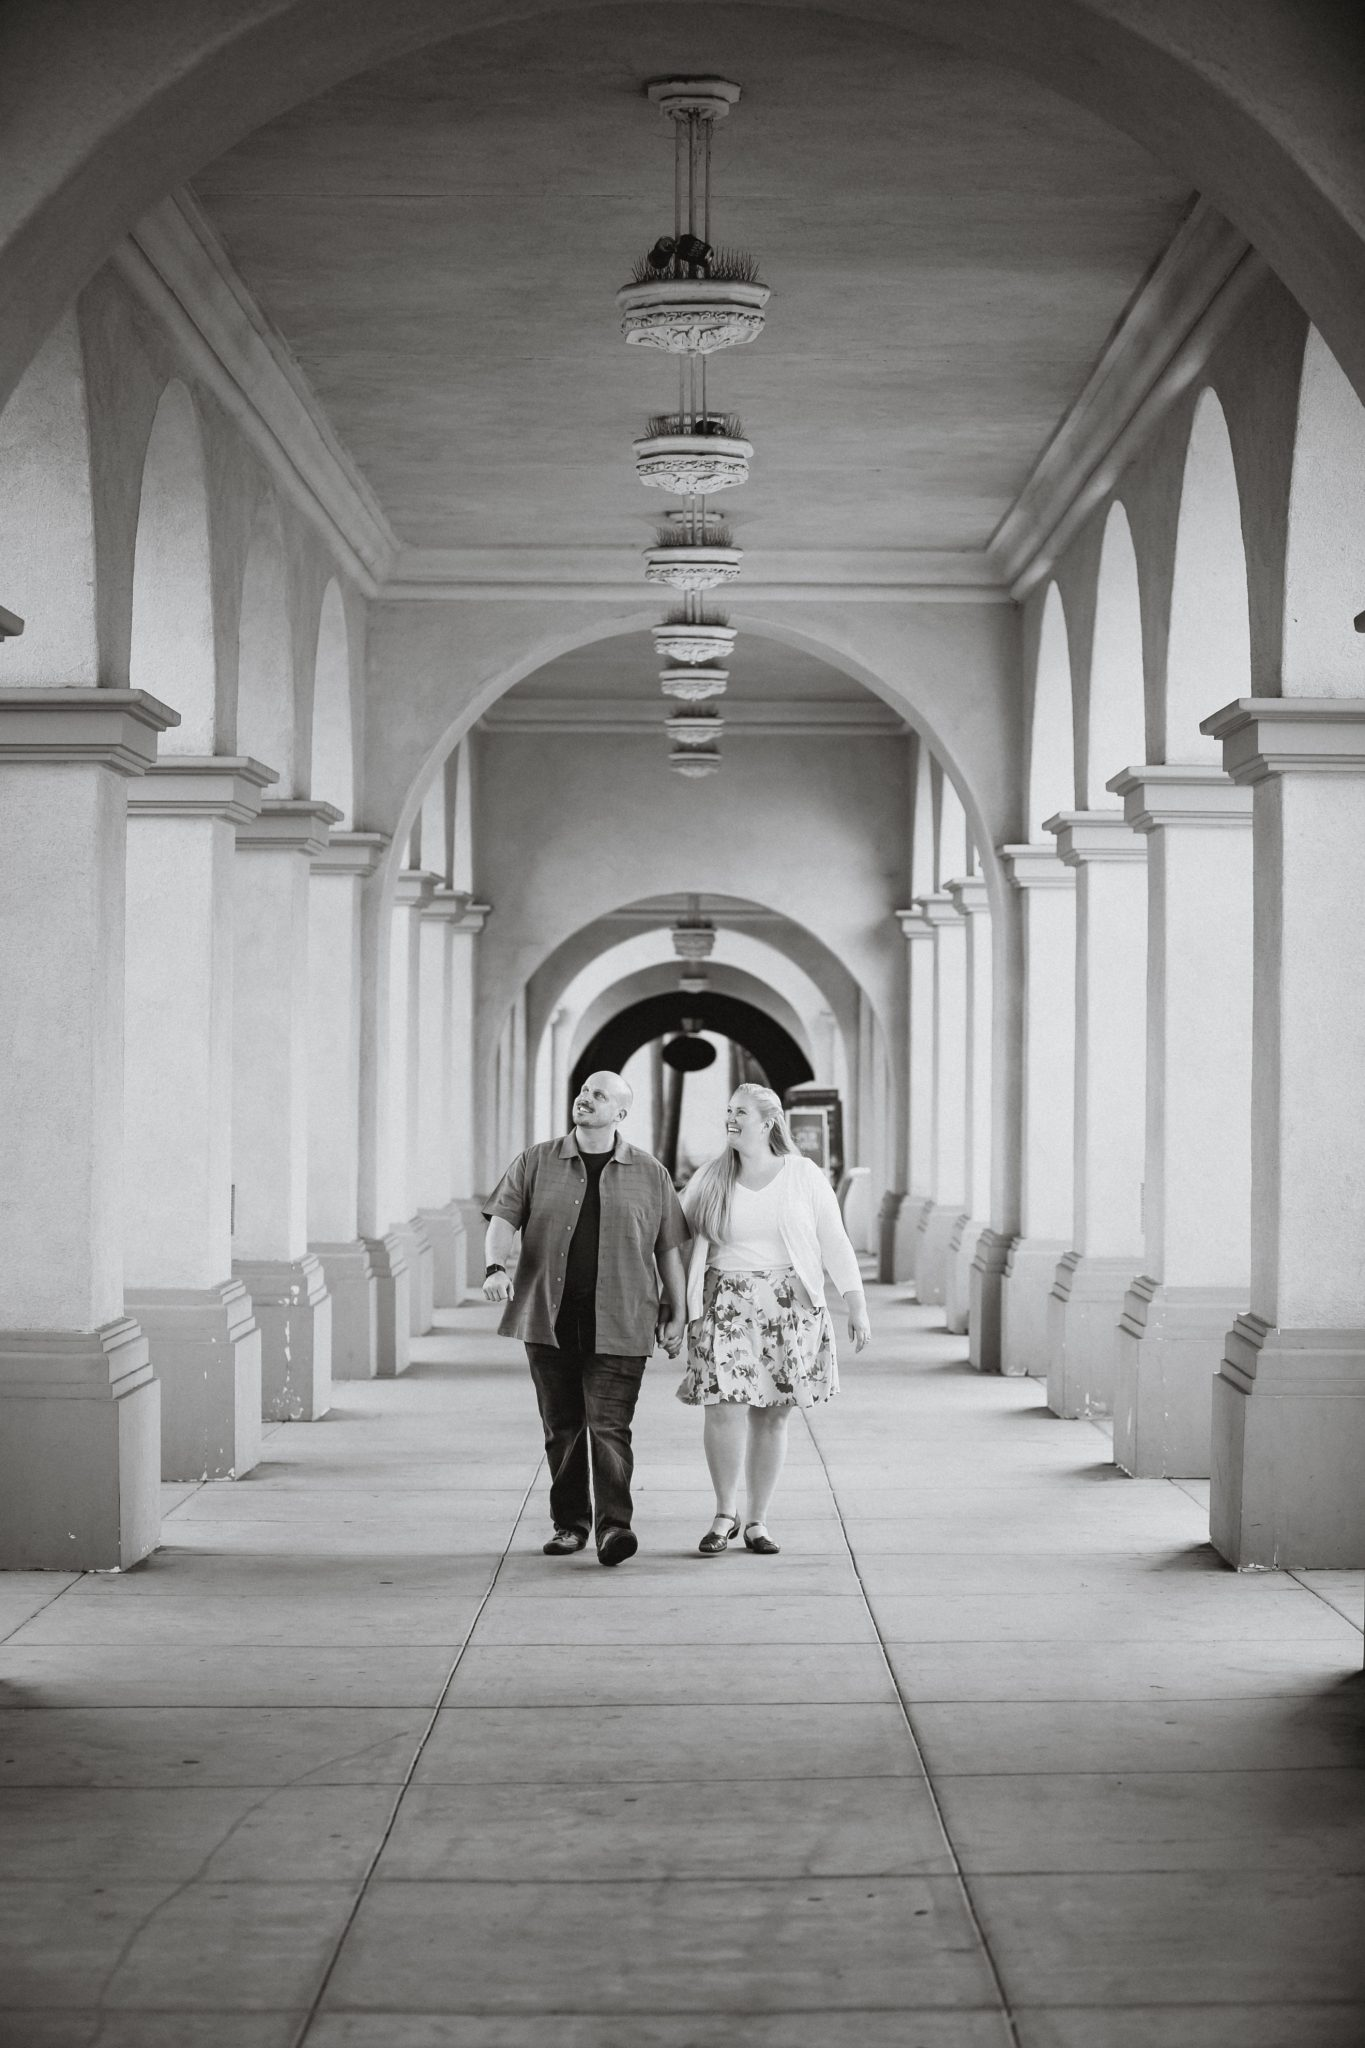 Guy and girl walking between columns